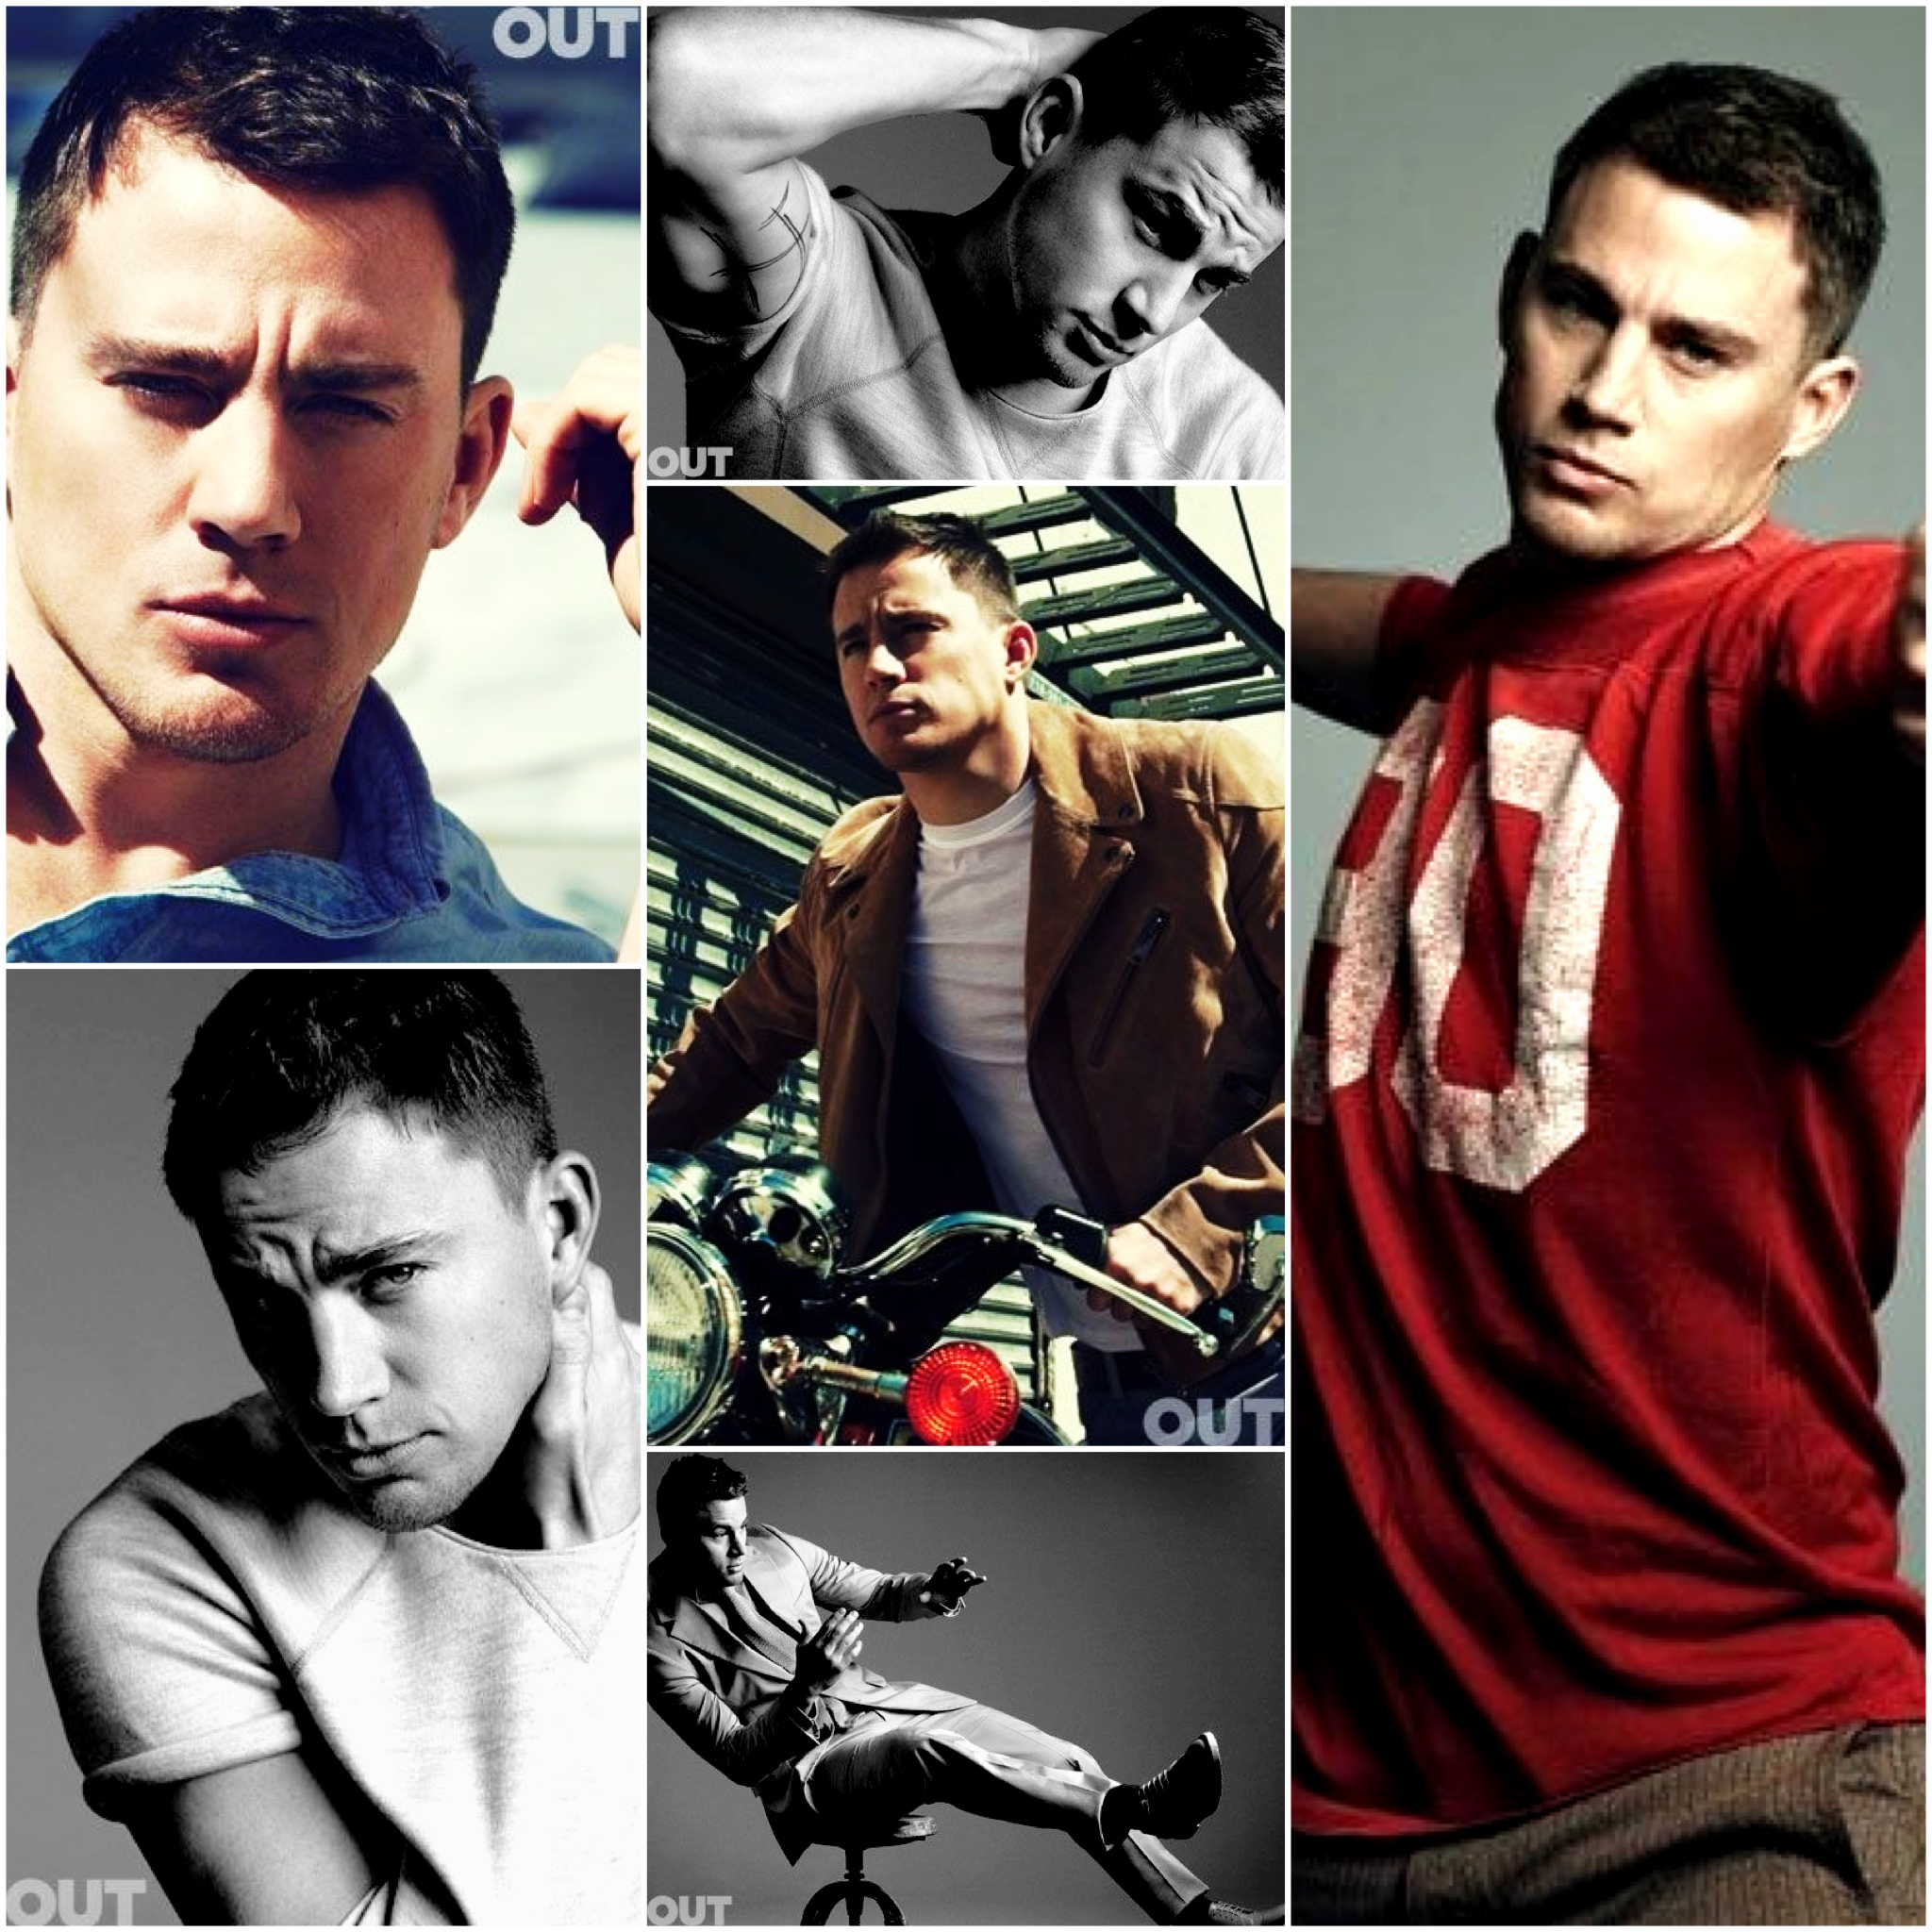 tatum online dating Channing tatum was born in a small town, cullman, alabama, 50 miles north of birmingham he is the son of kay (faust), an airline worker, and glenn.